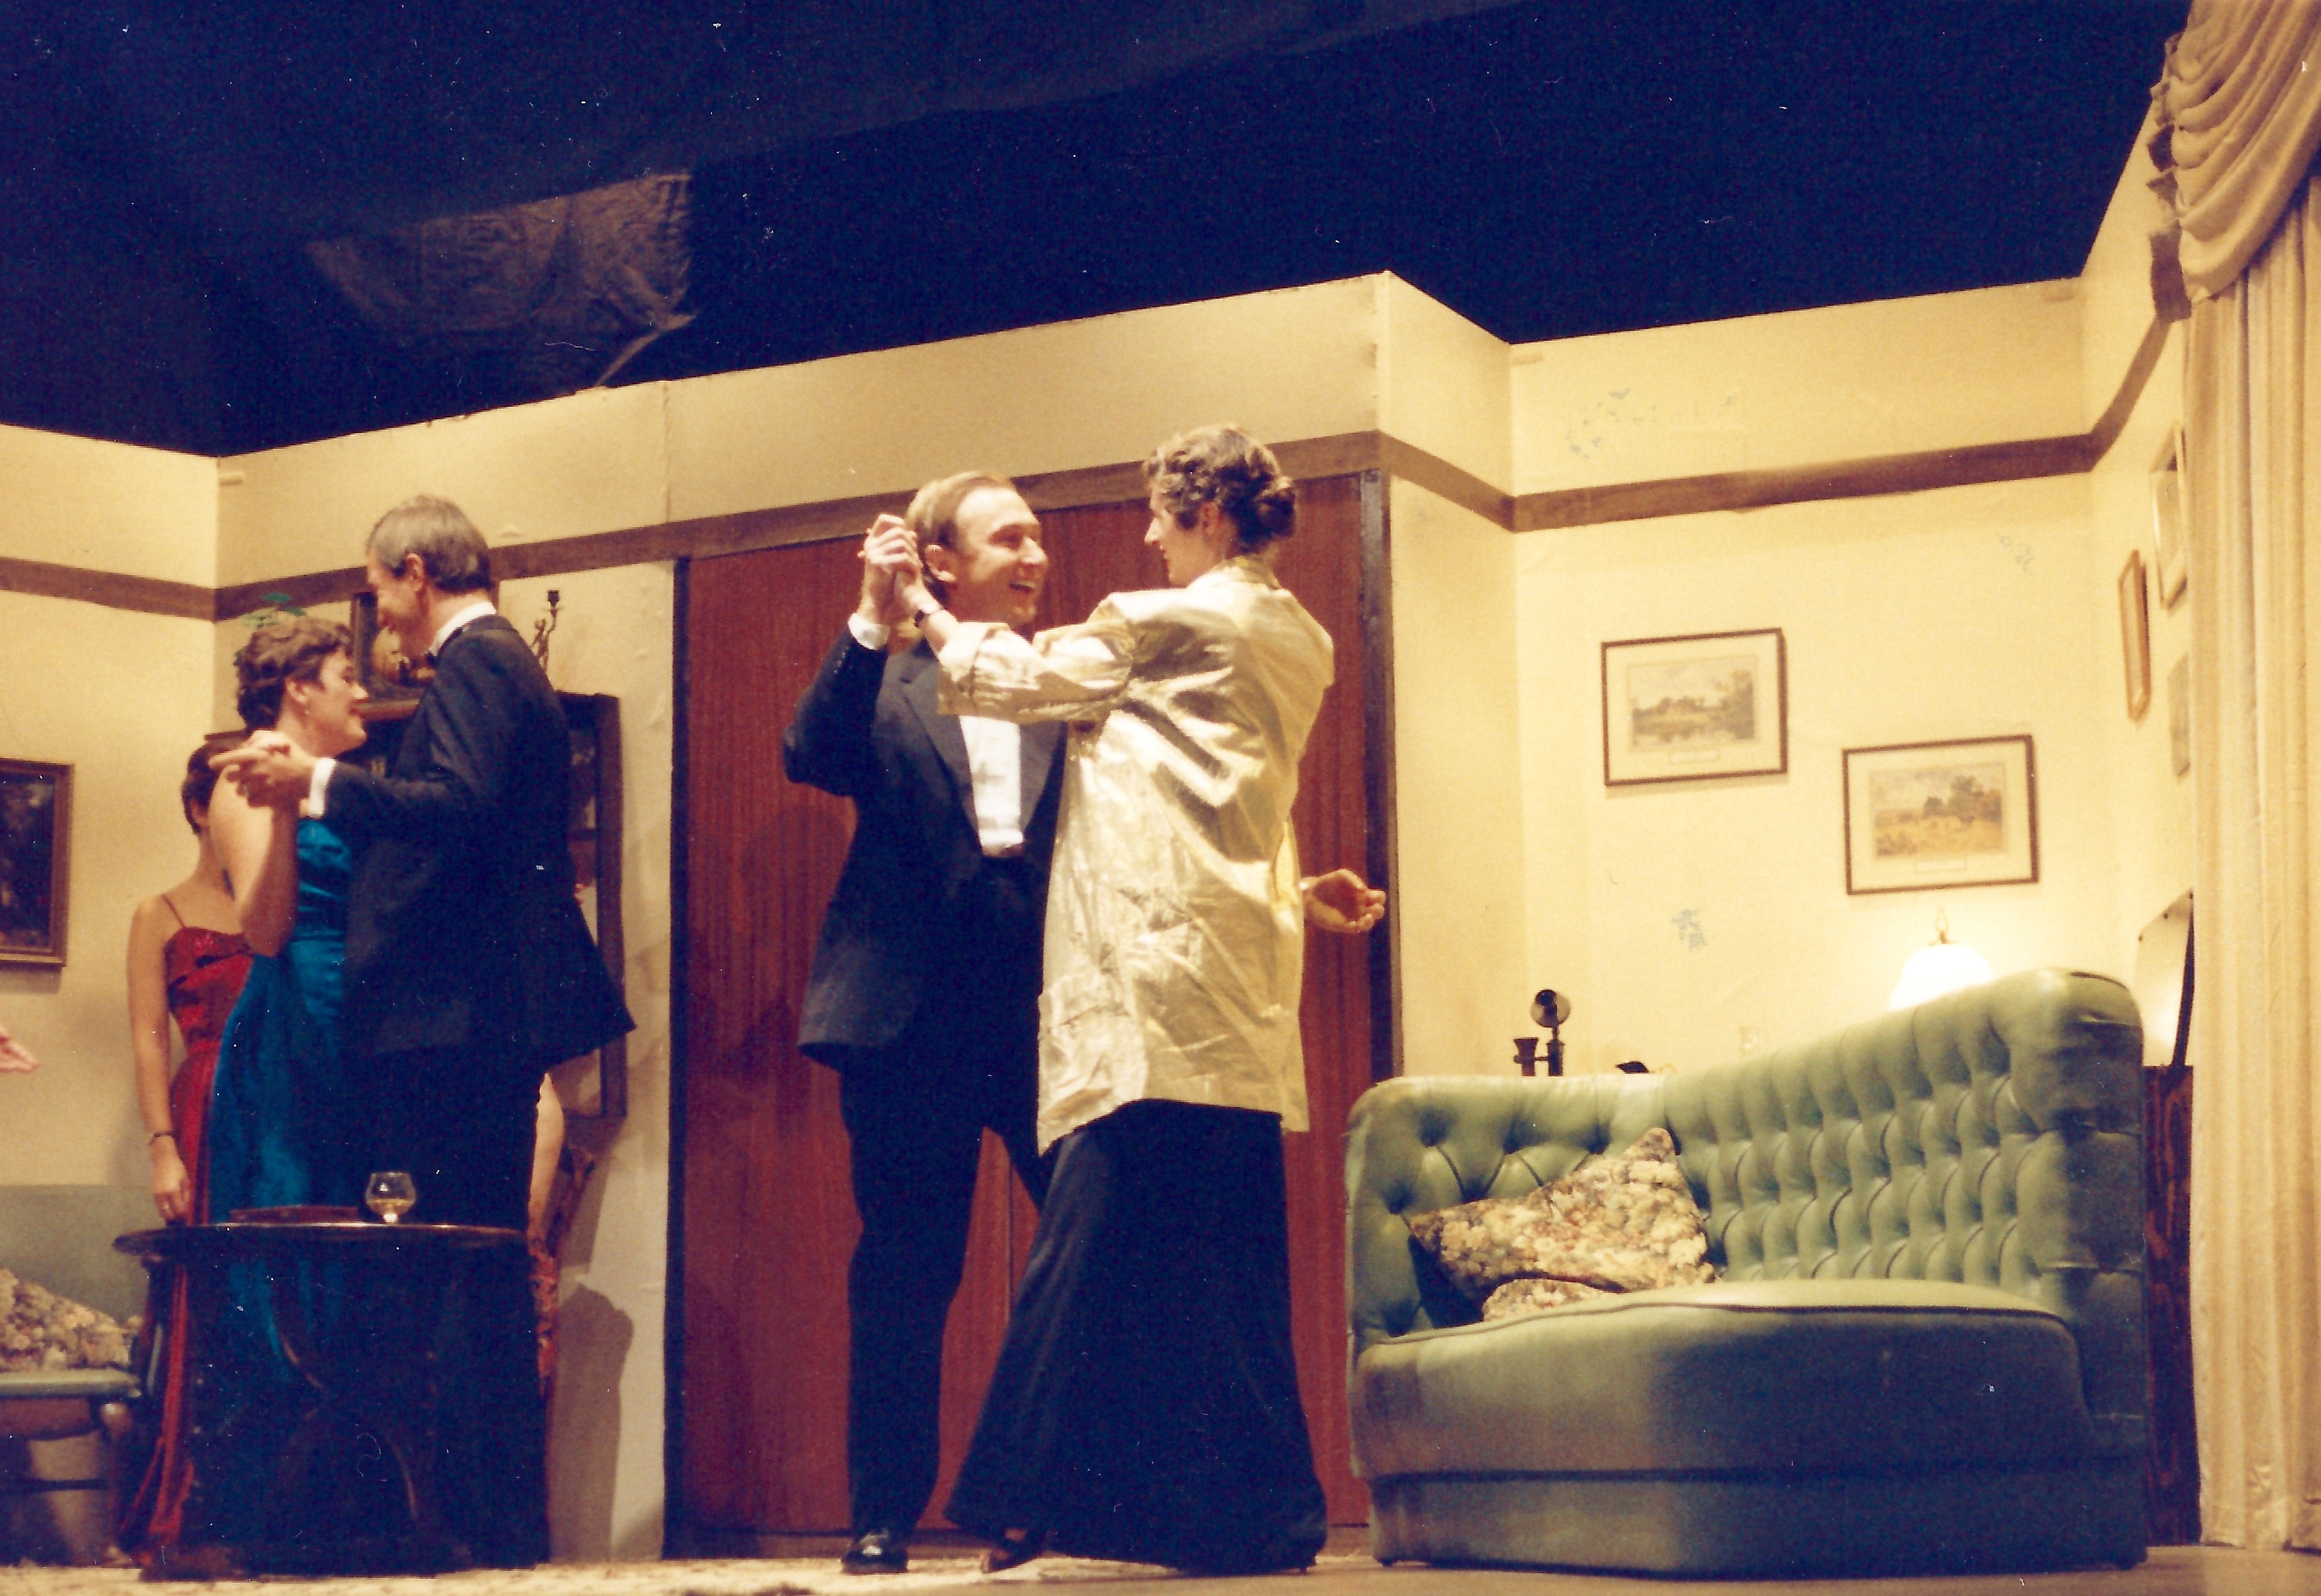 A still from the Bishops Waltham Little Theatre's 1989 production of Dangerous Corner, showing two couples dancing in a lounge setting